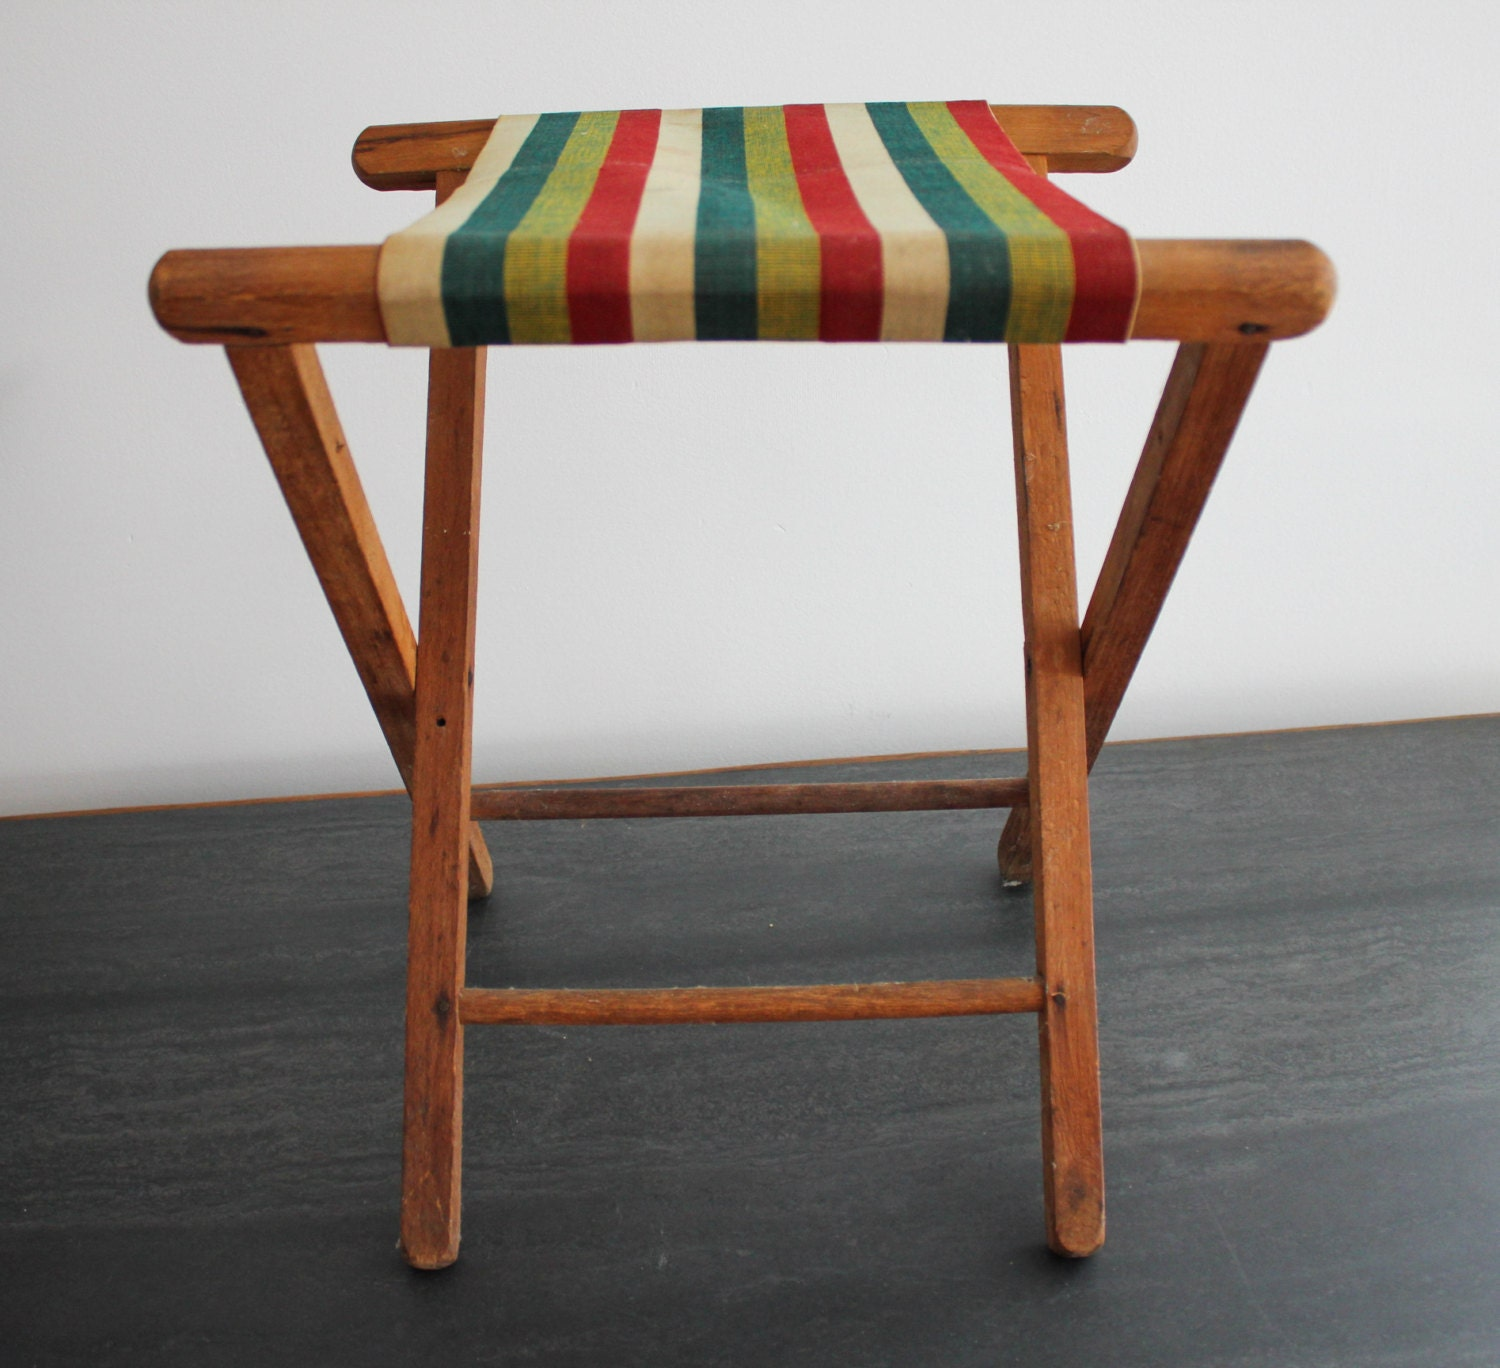 Vintage wood and canvas folding camping chair stool striped